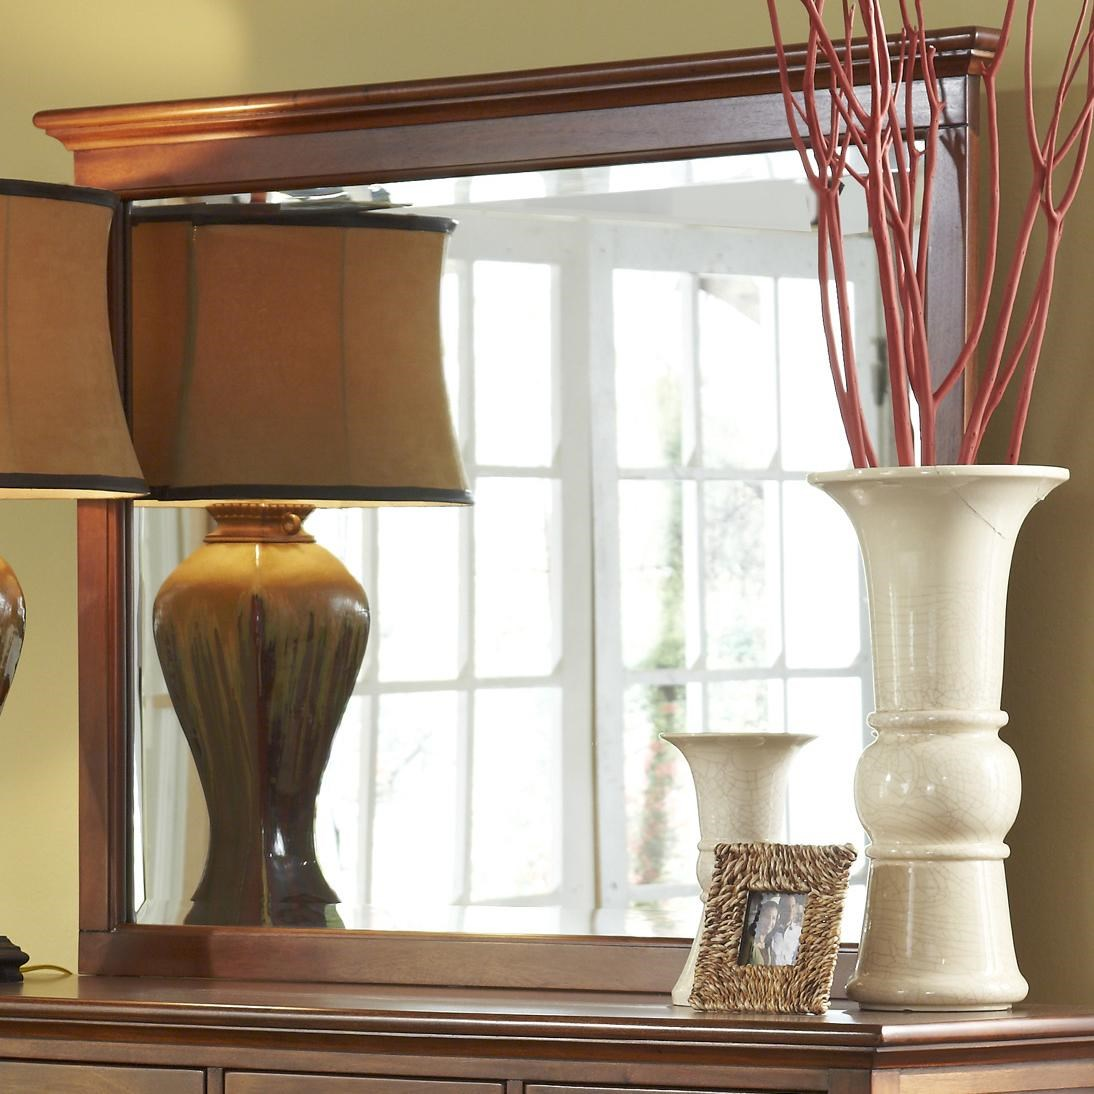 Transitional Dresser Mirror with Moulding